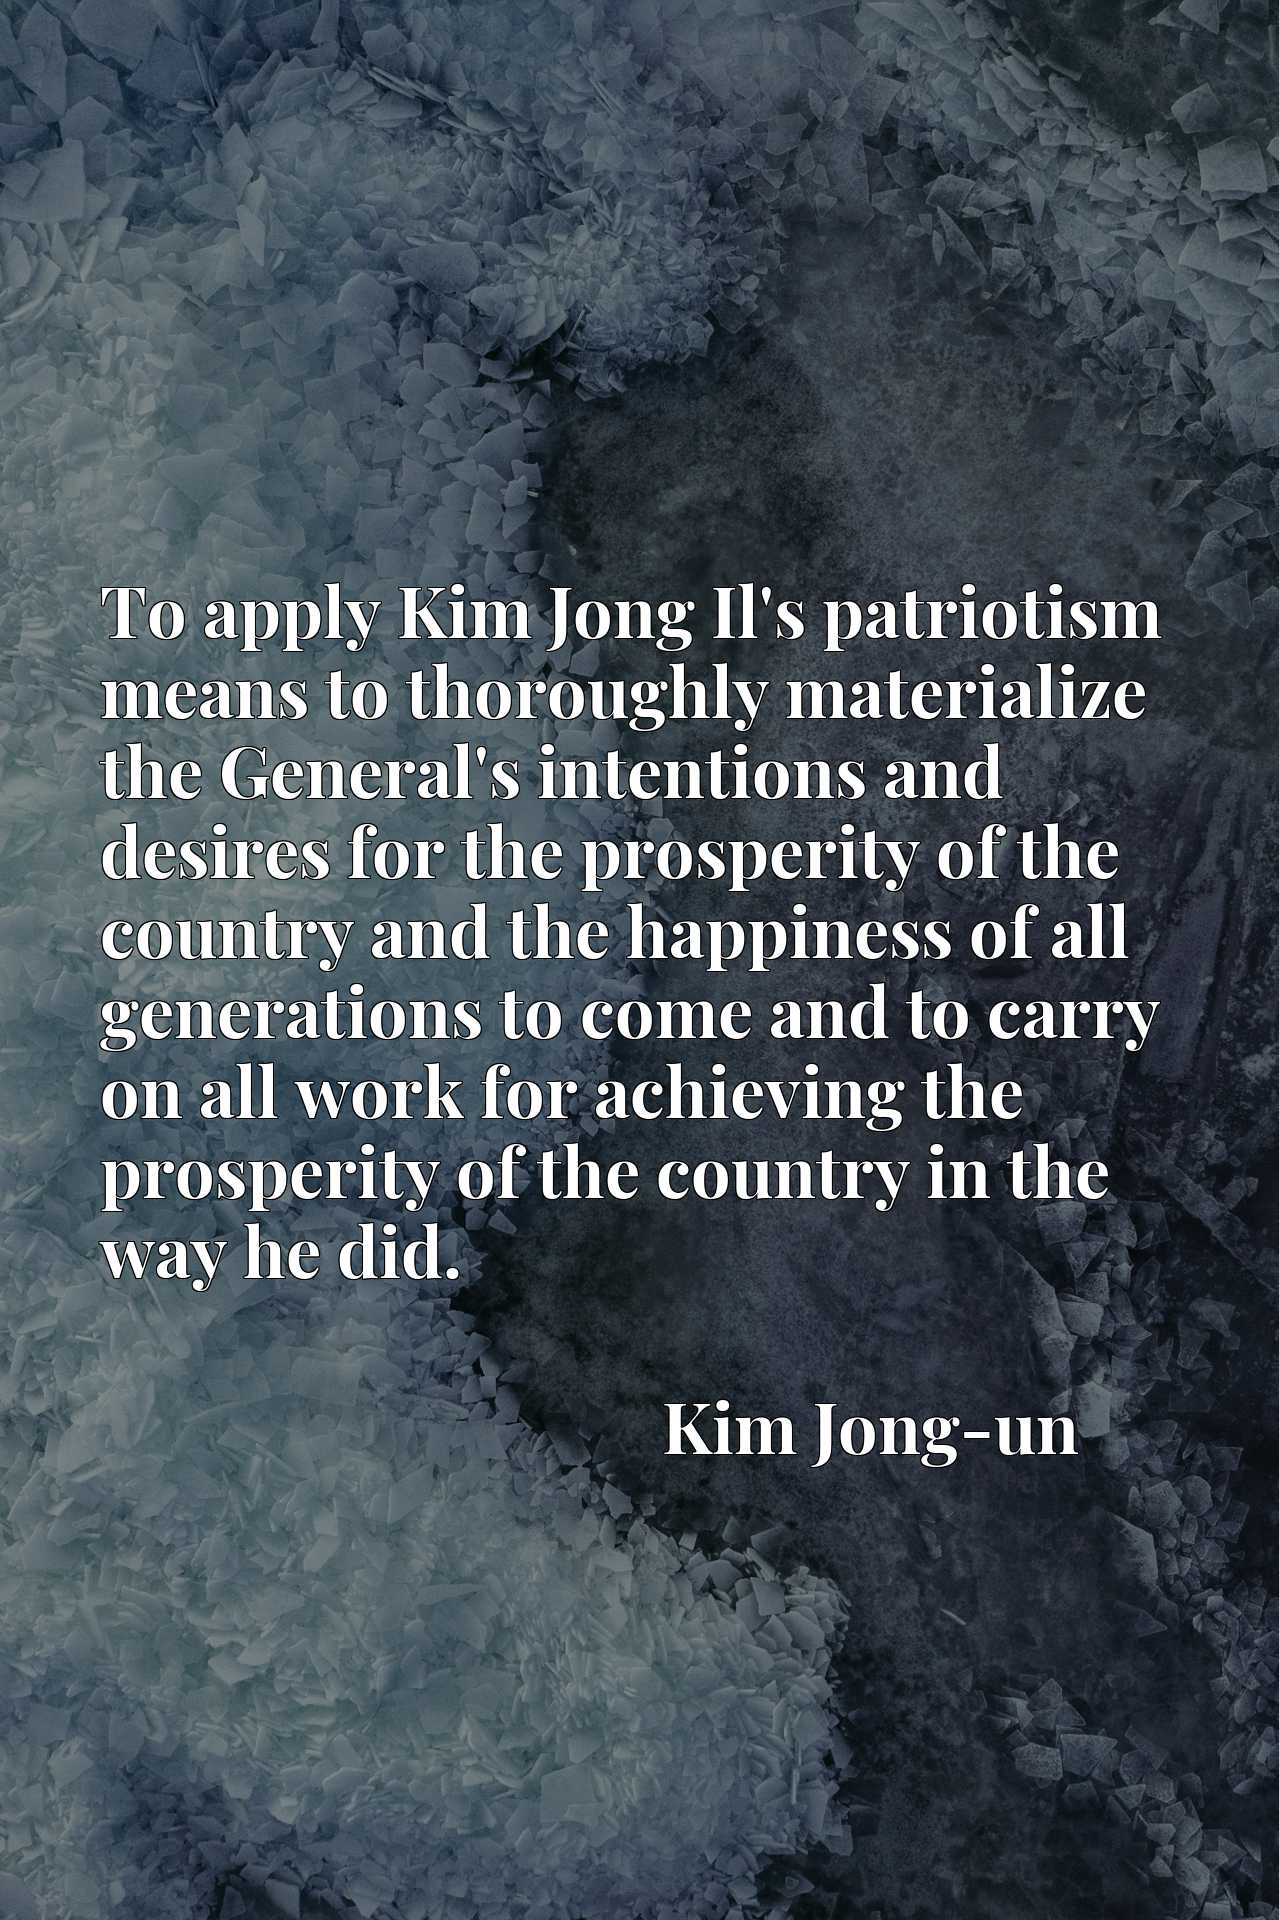 To apply Kim Jong Il's patriotism means to thoroughly materialize the General's intentions and desires for the prosperity of the country and the happiness of all generations to come and to carry on all work for achieving the prosperity of the country in the way he did.